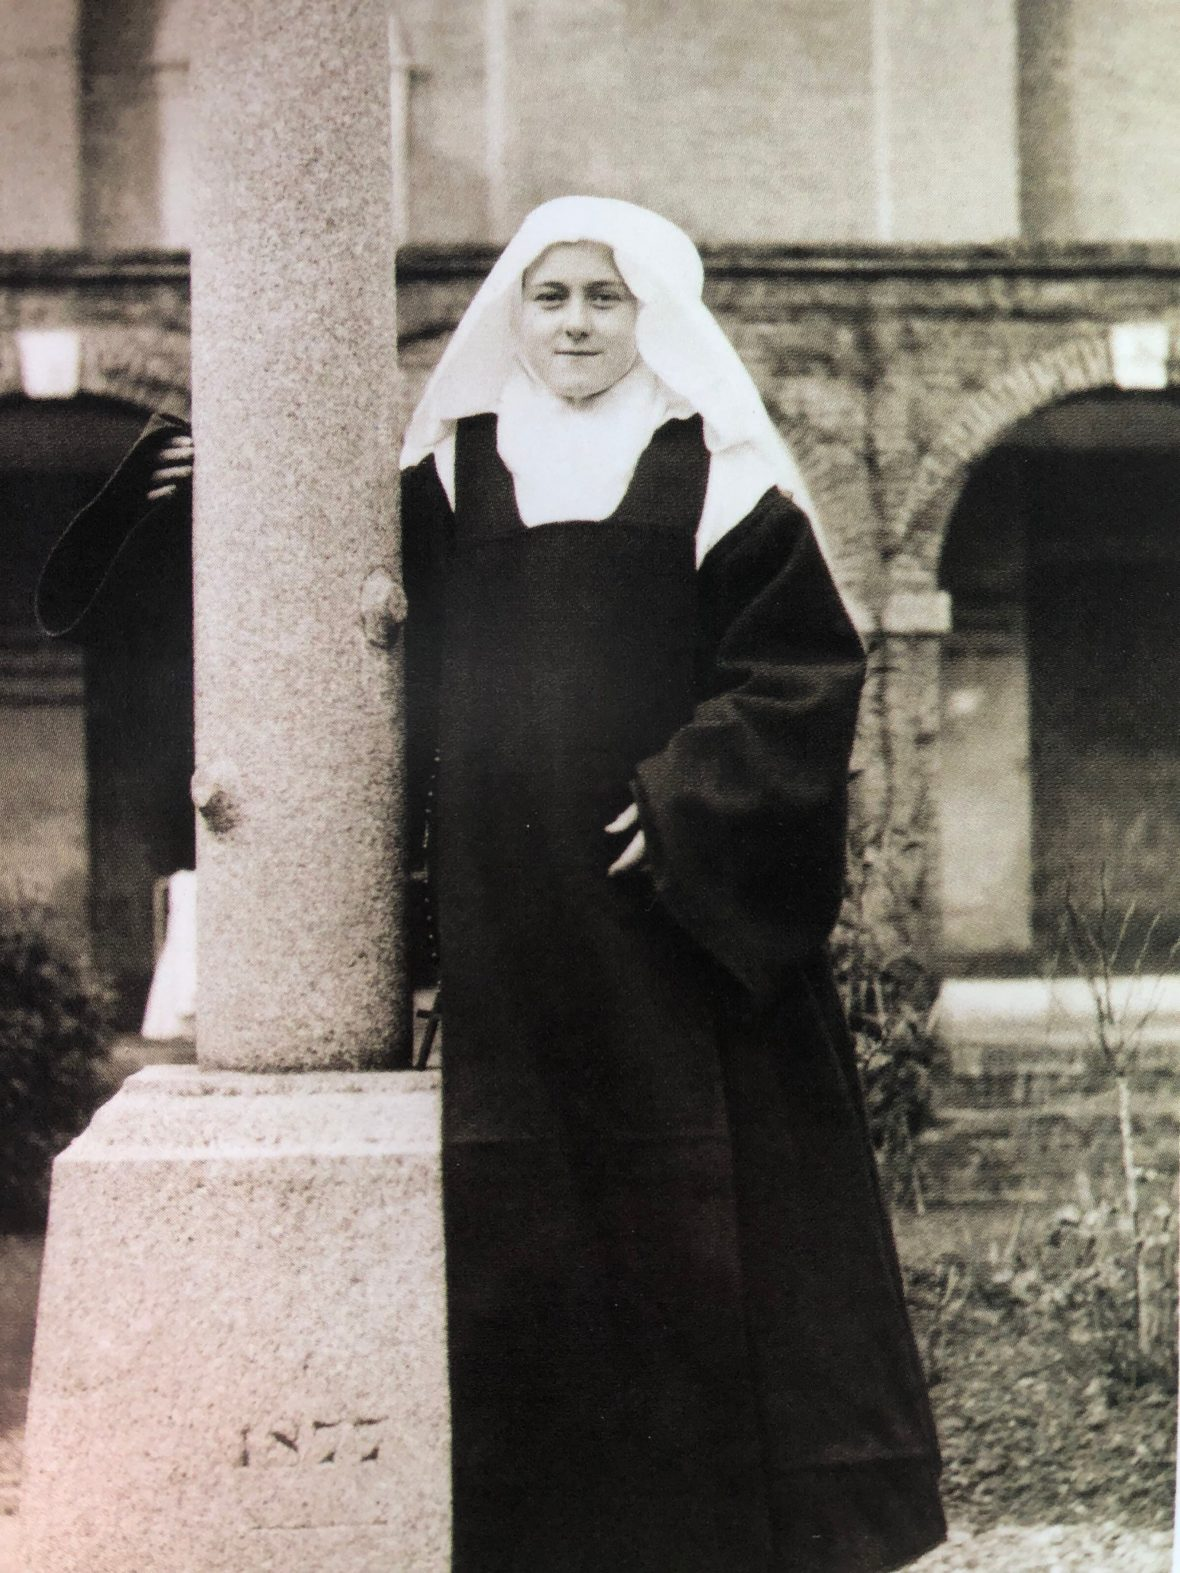 St. Therese Martin, The Little Flower